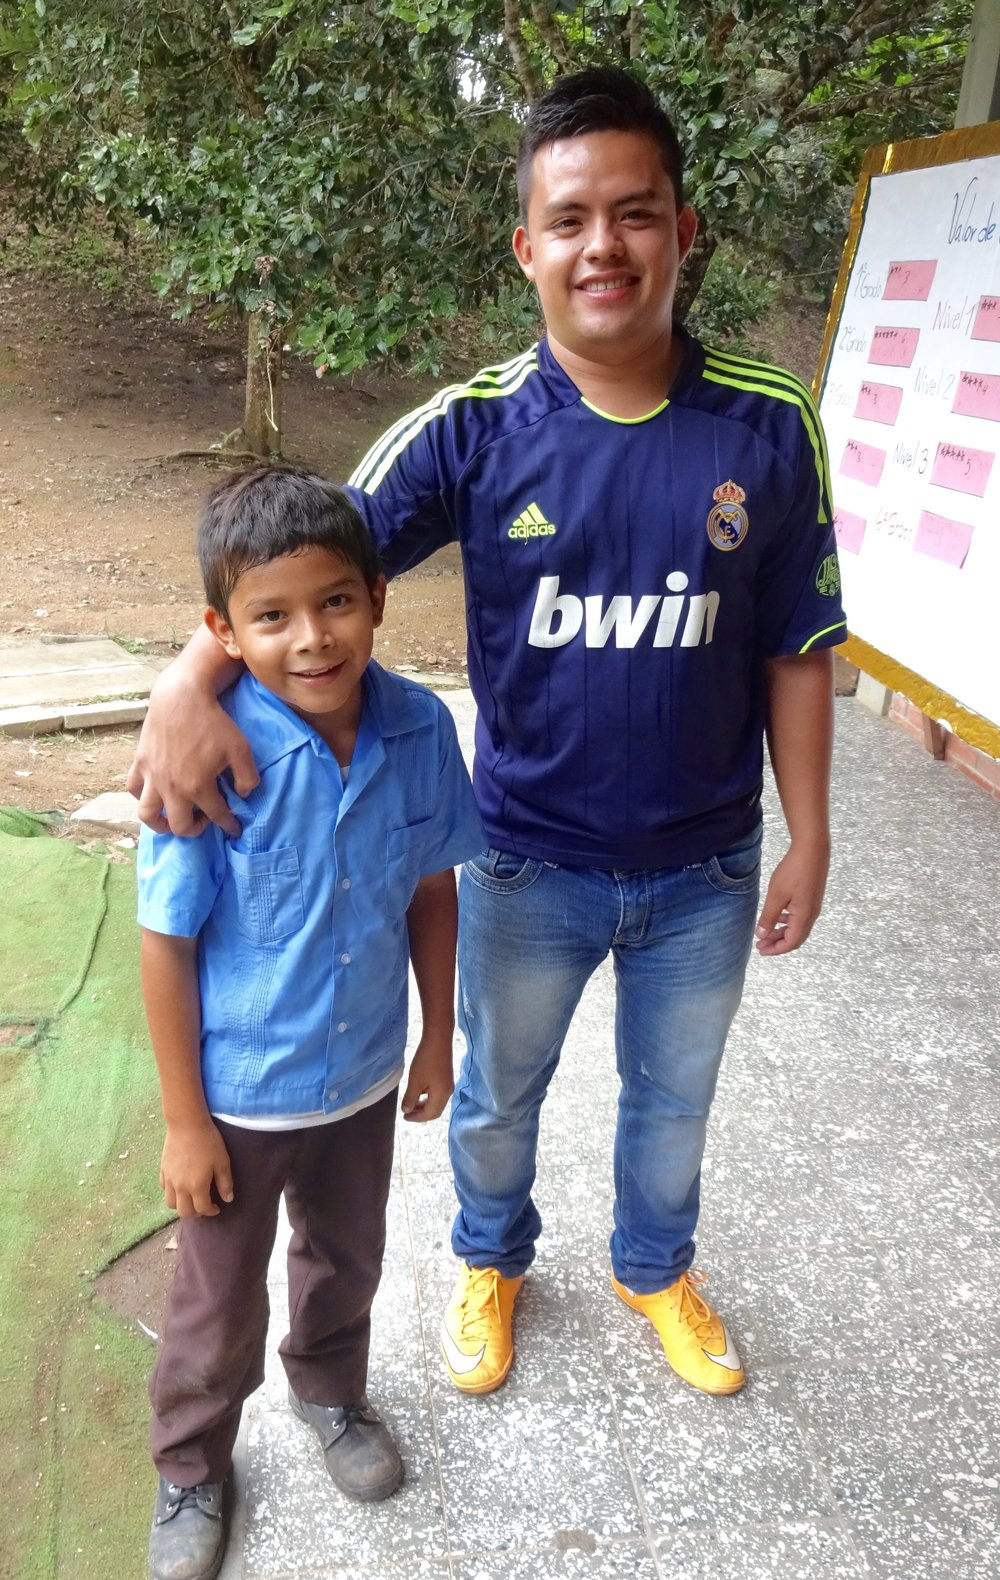 Age: 22 Hometown: Santa Rosa de Copán Position: Special Education Teacher